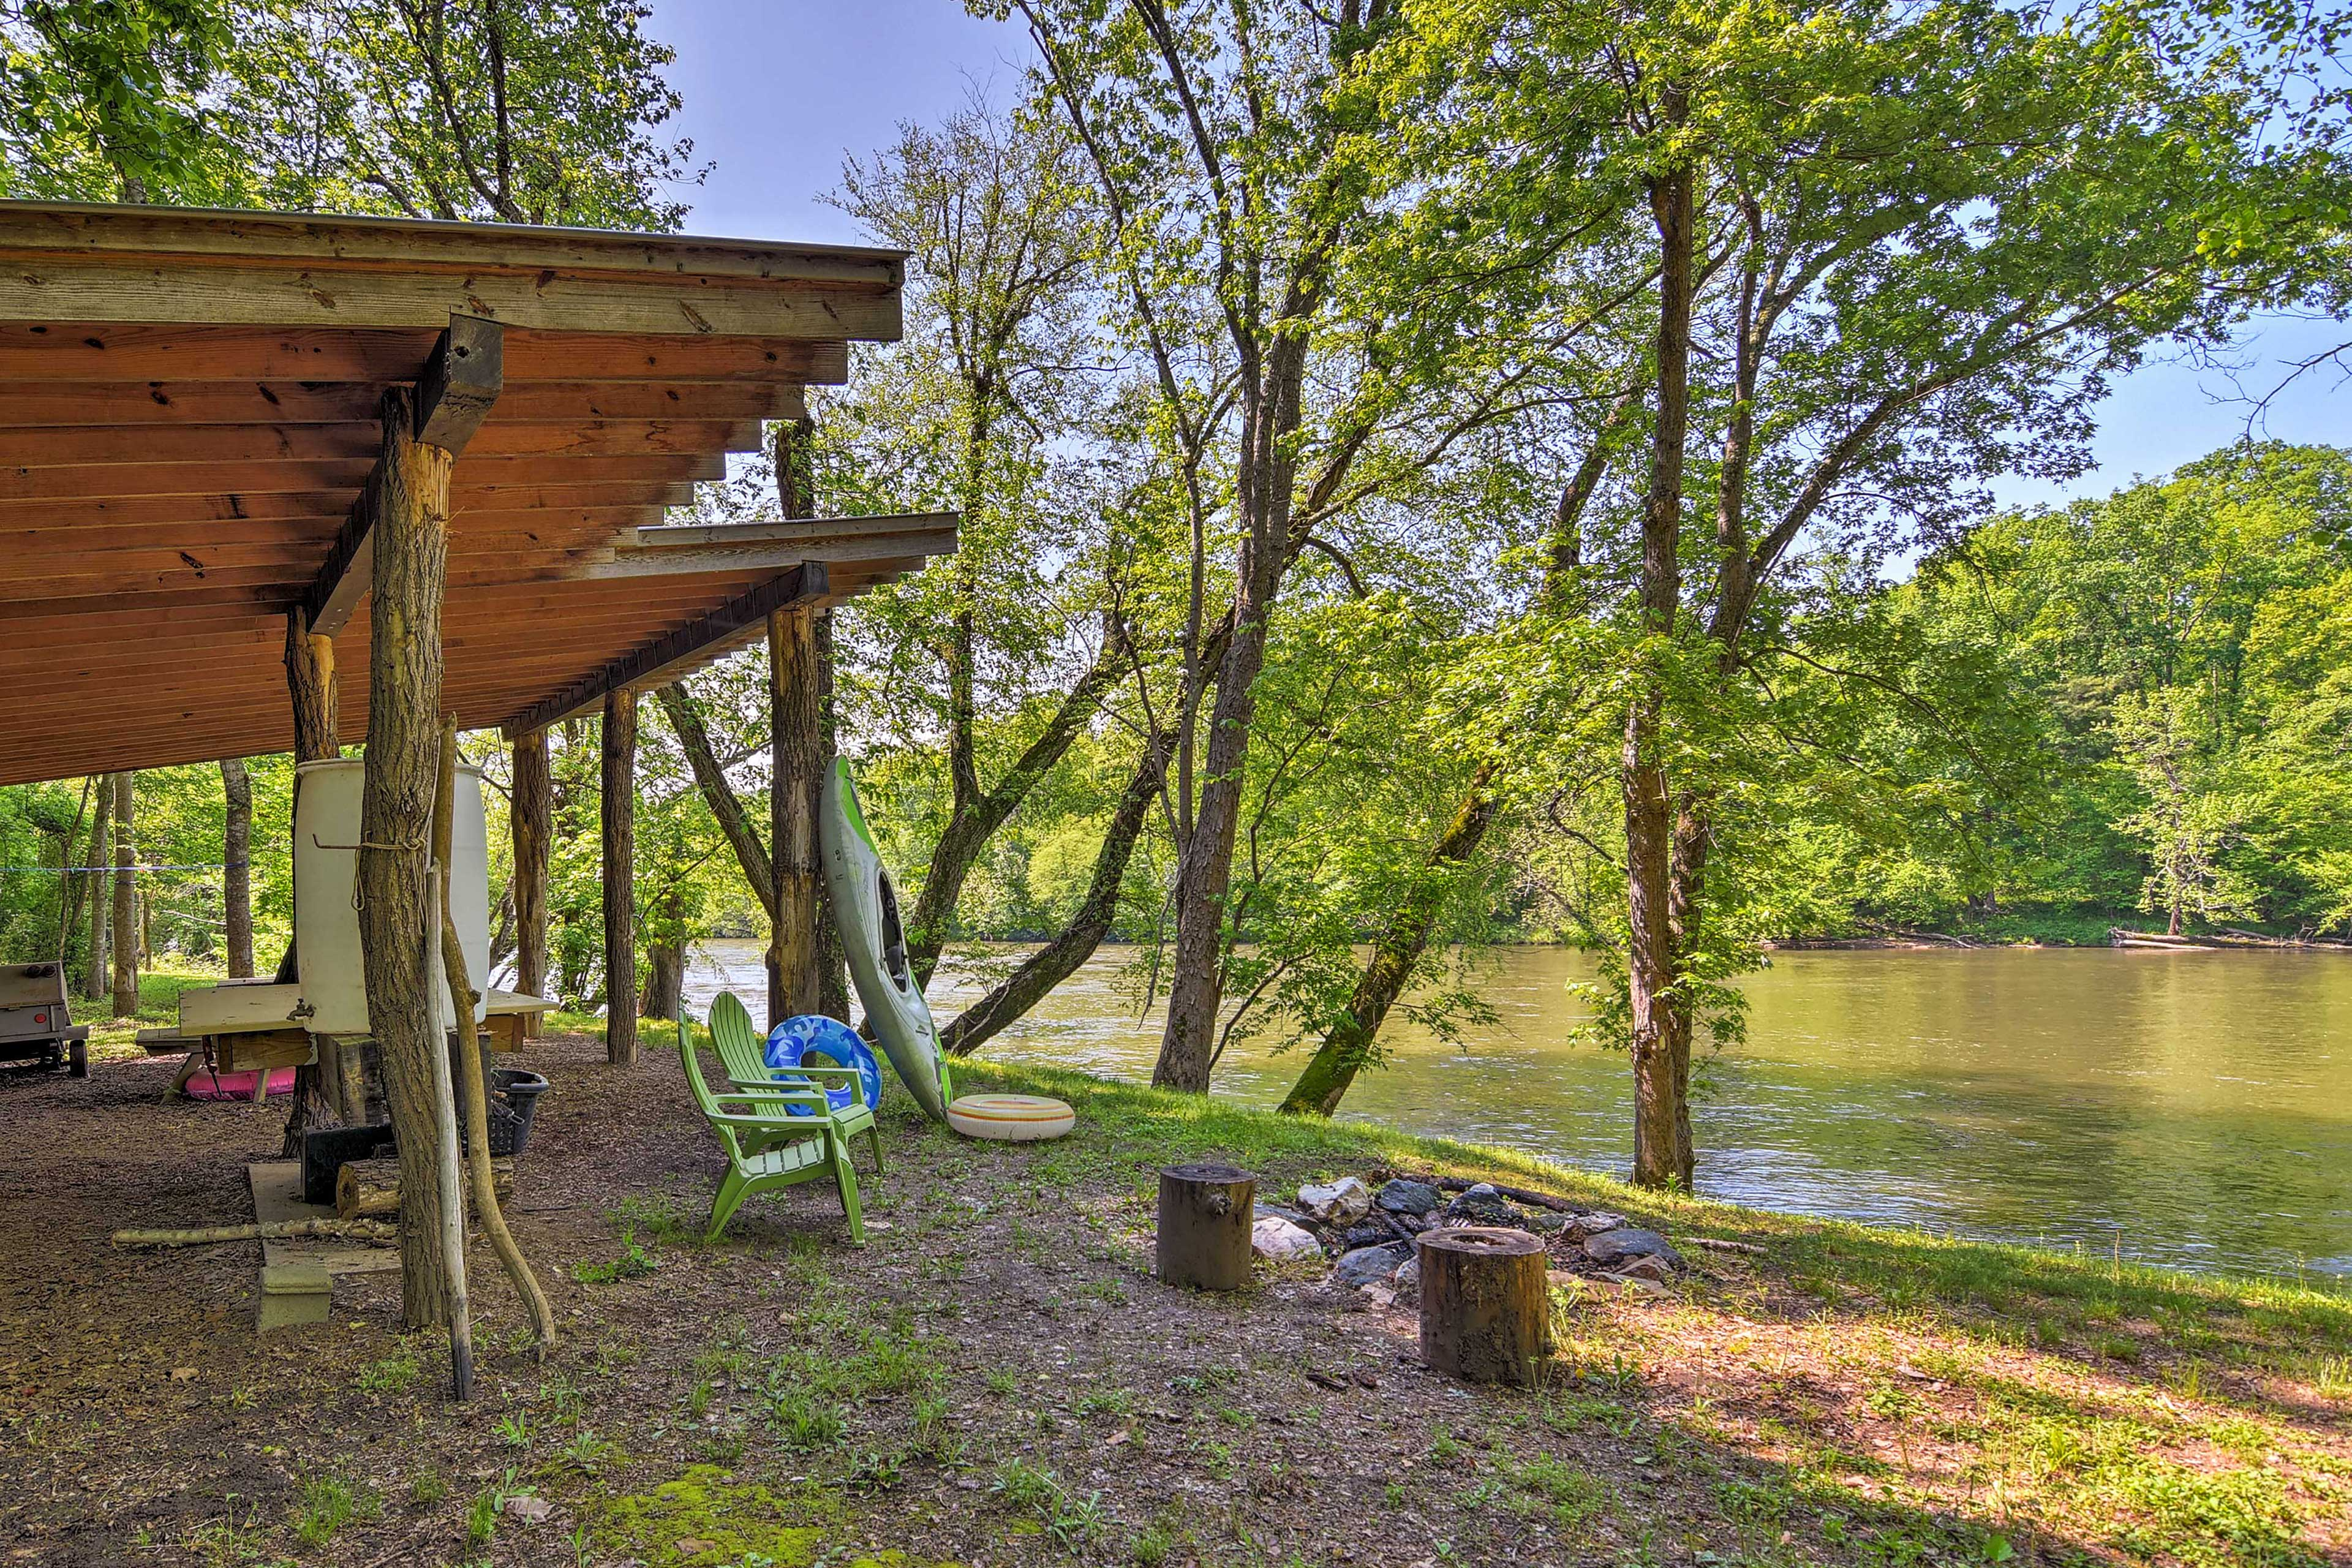 Float in and enjoy this shared 5-acre recreation area on the French Broad River!